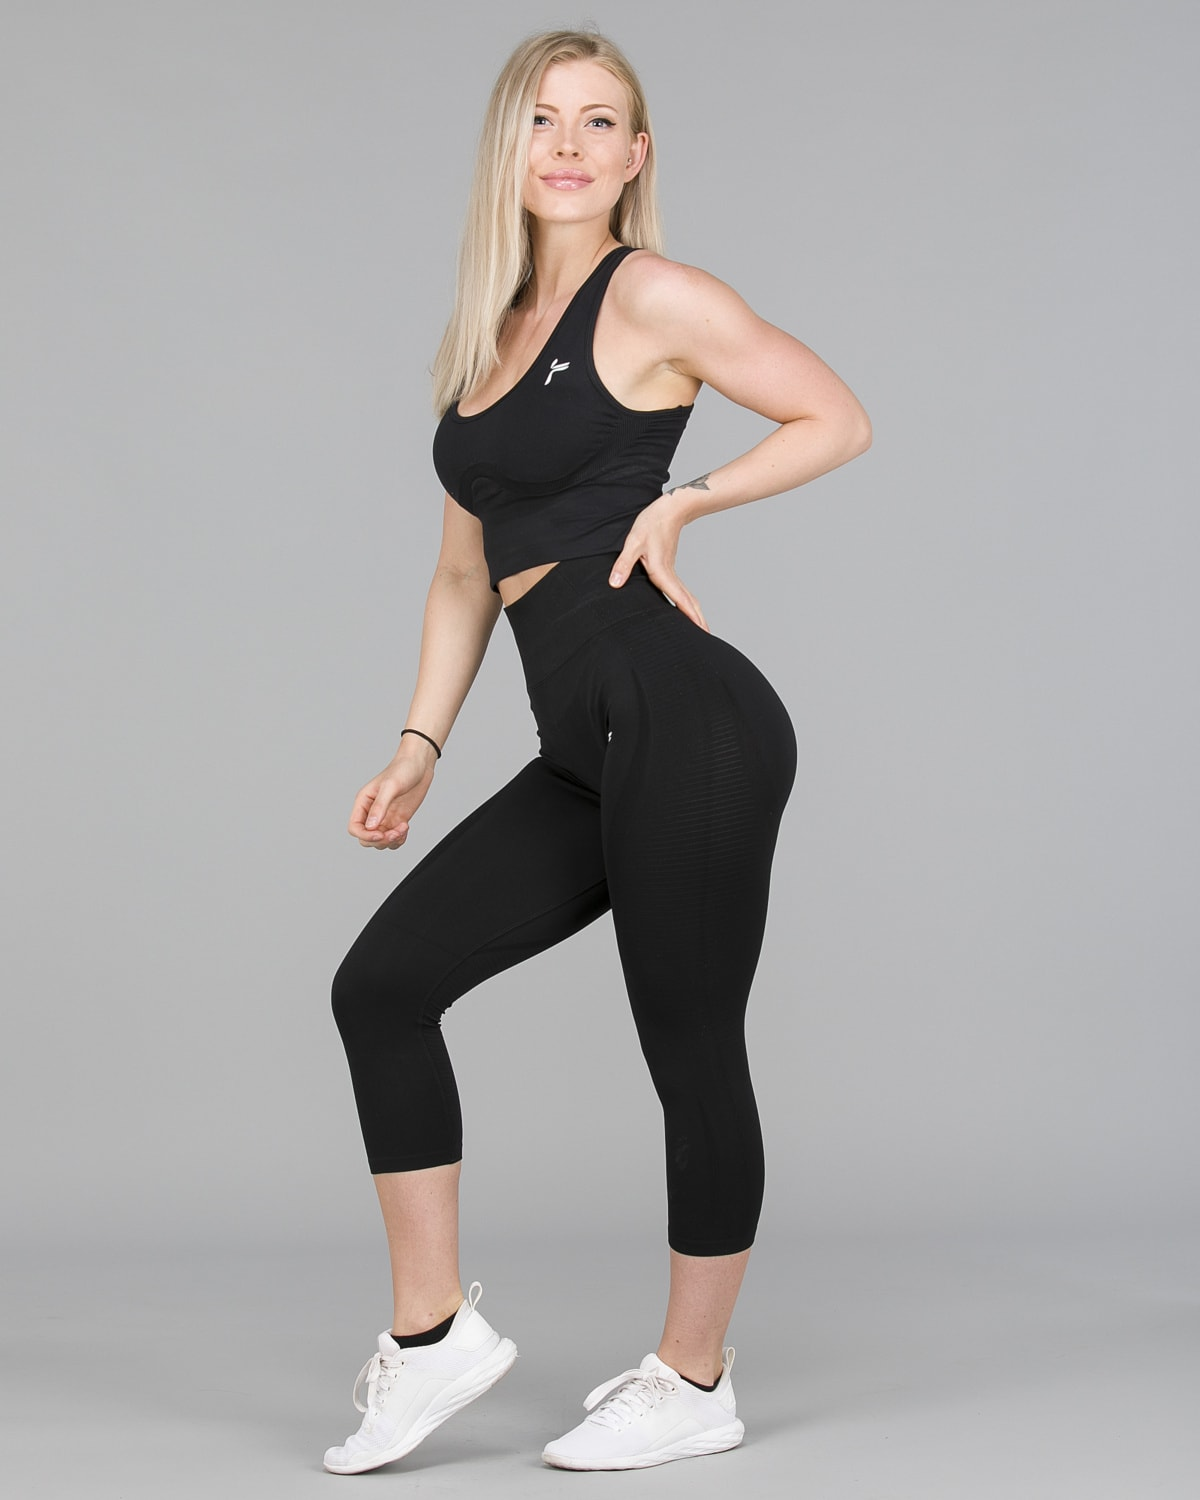 FAMME – Vortex Leggings 7:8 – Black4